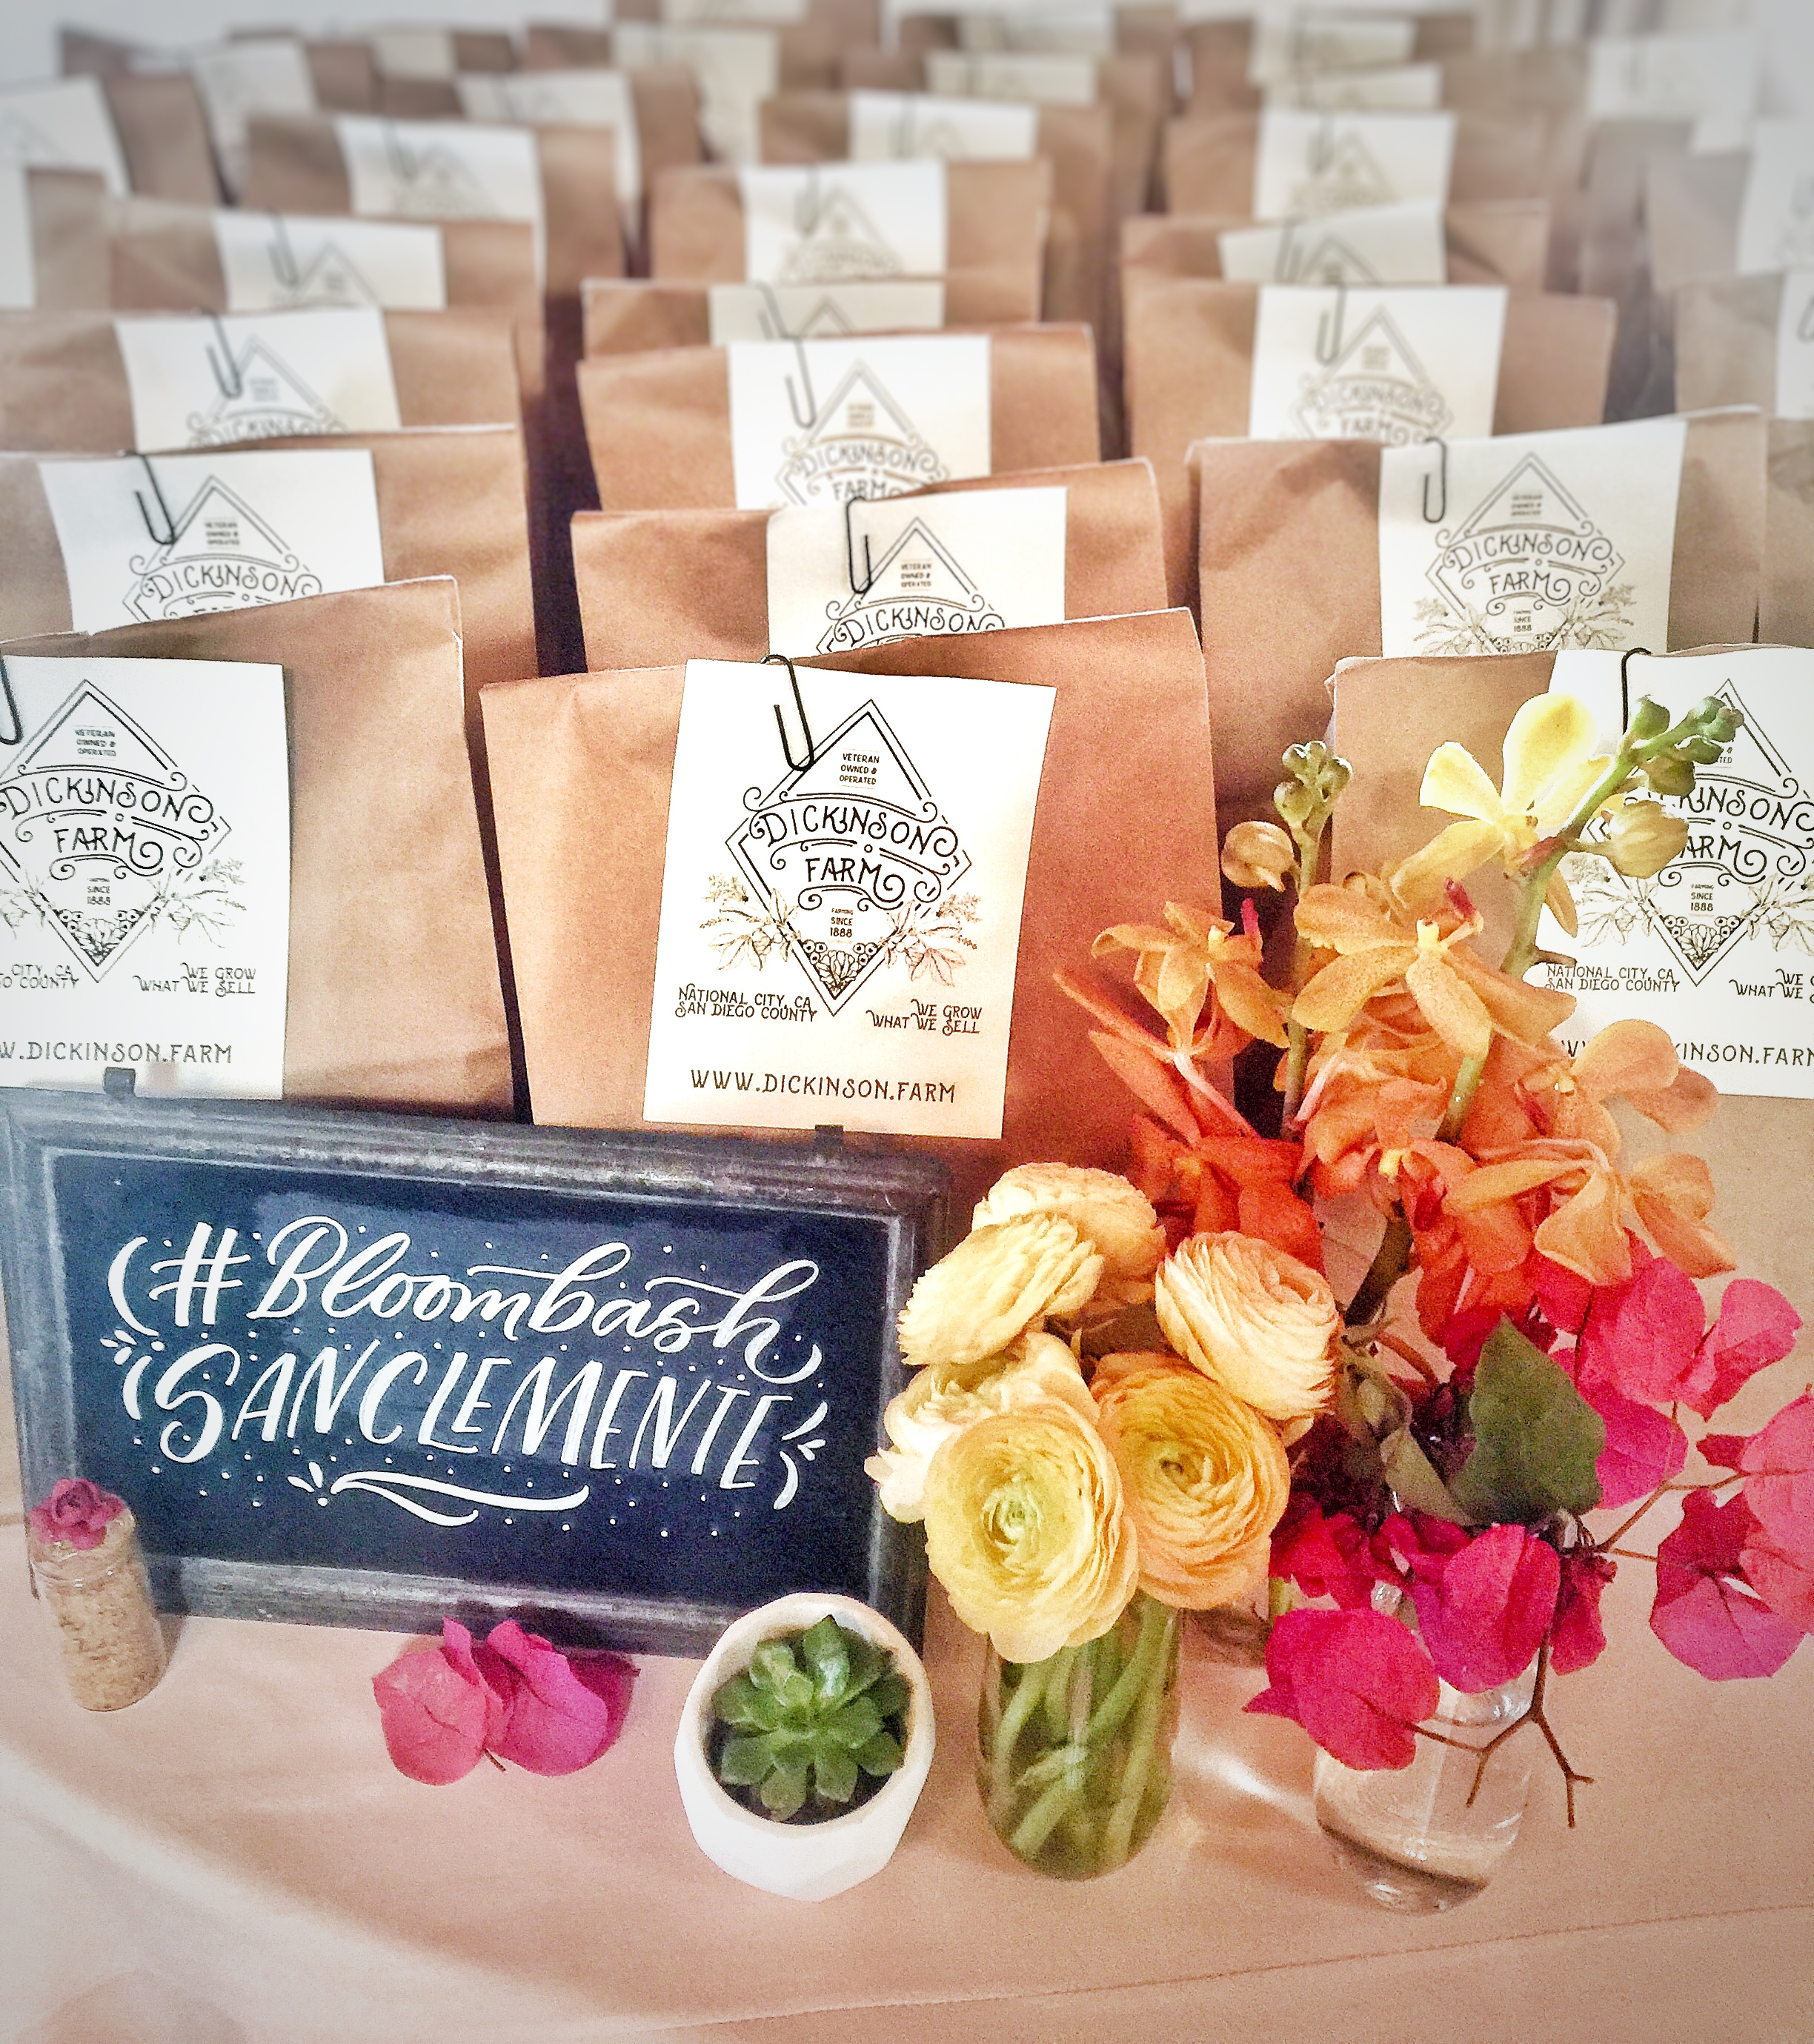 Dickenson Farms    provided fresh and organic lunch bags. This 100% Veteran owned small farm is located in National City, CA. Their market is registered organic and grows naturally & chemically free.